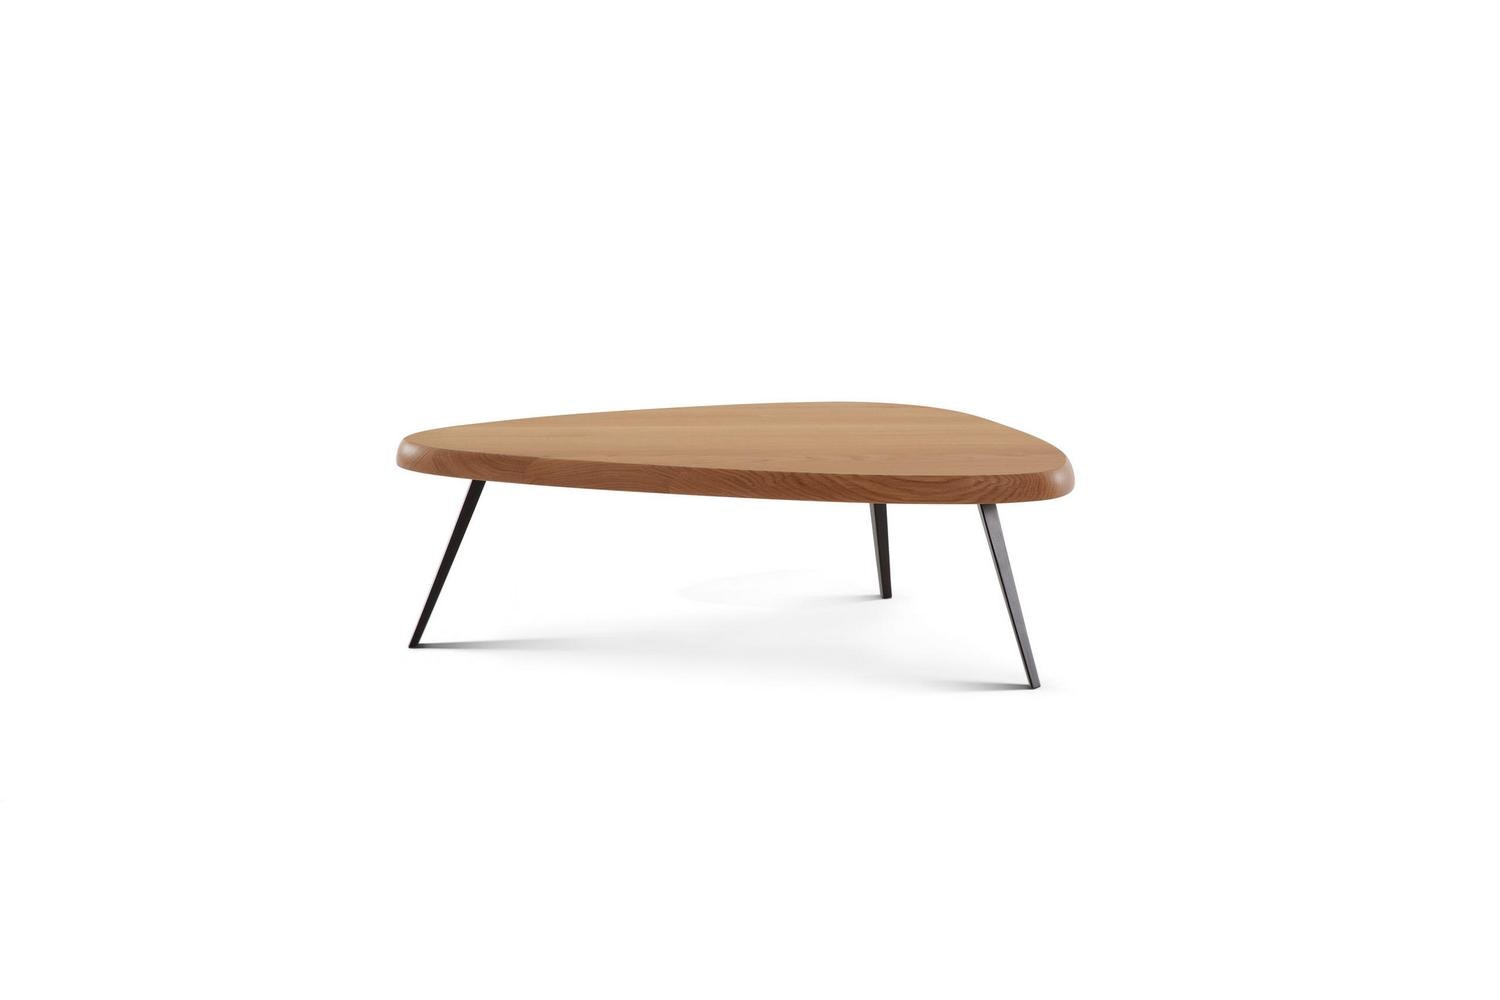 527 Mexique Coffee Table by Charlotte Perriand for Cassina